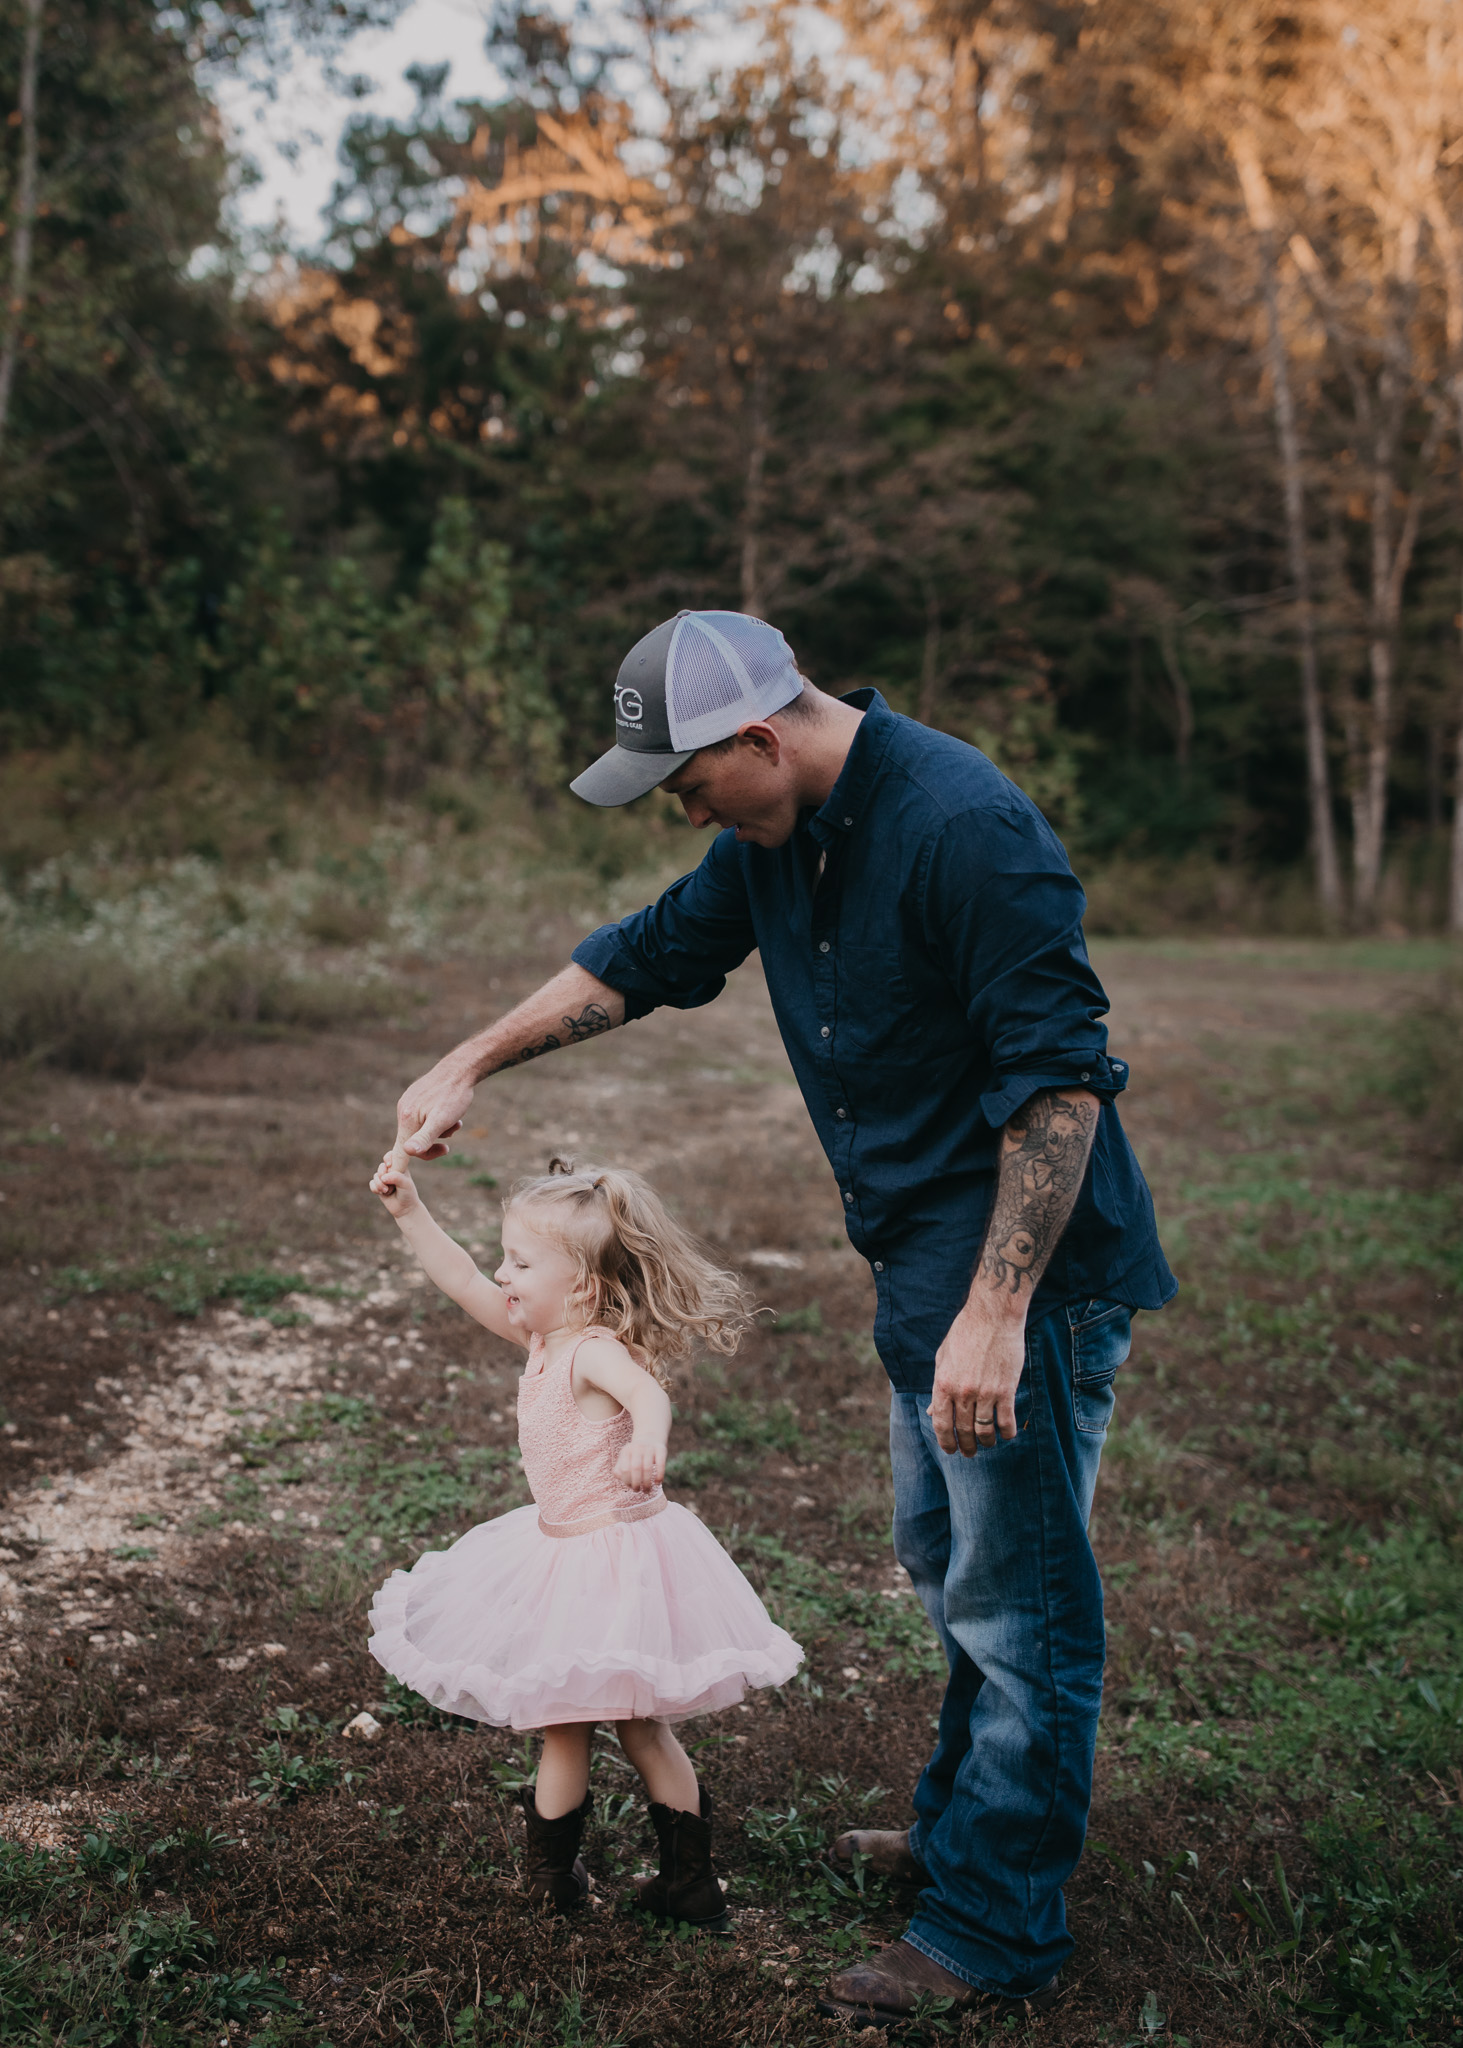 dad twirling daughter